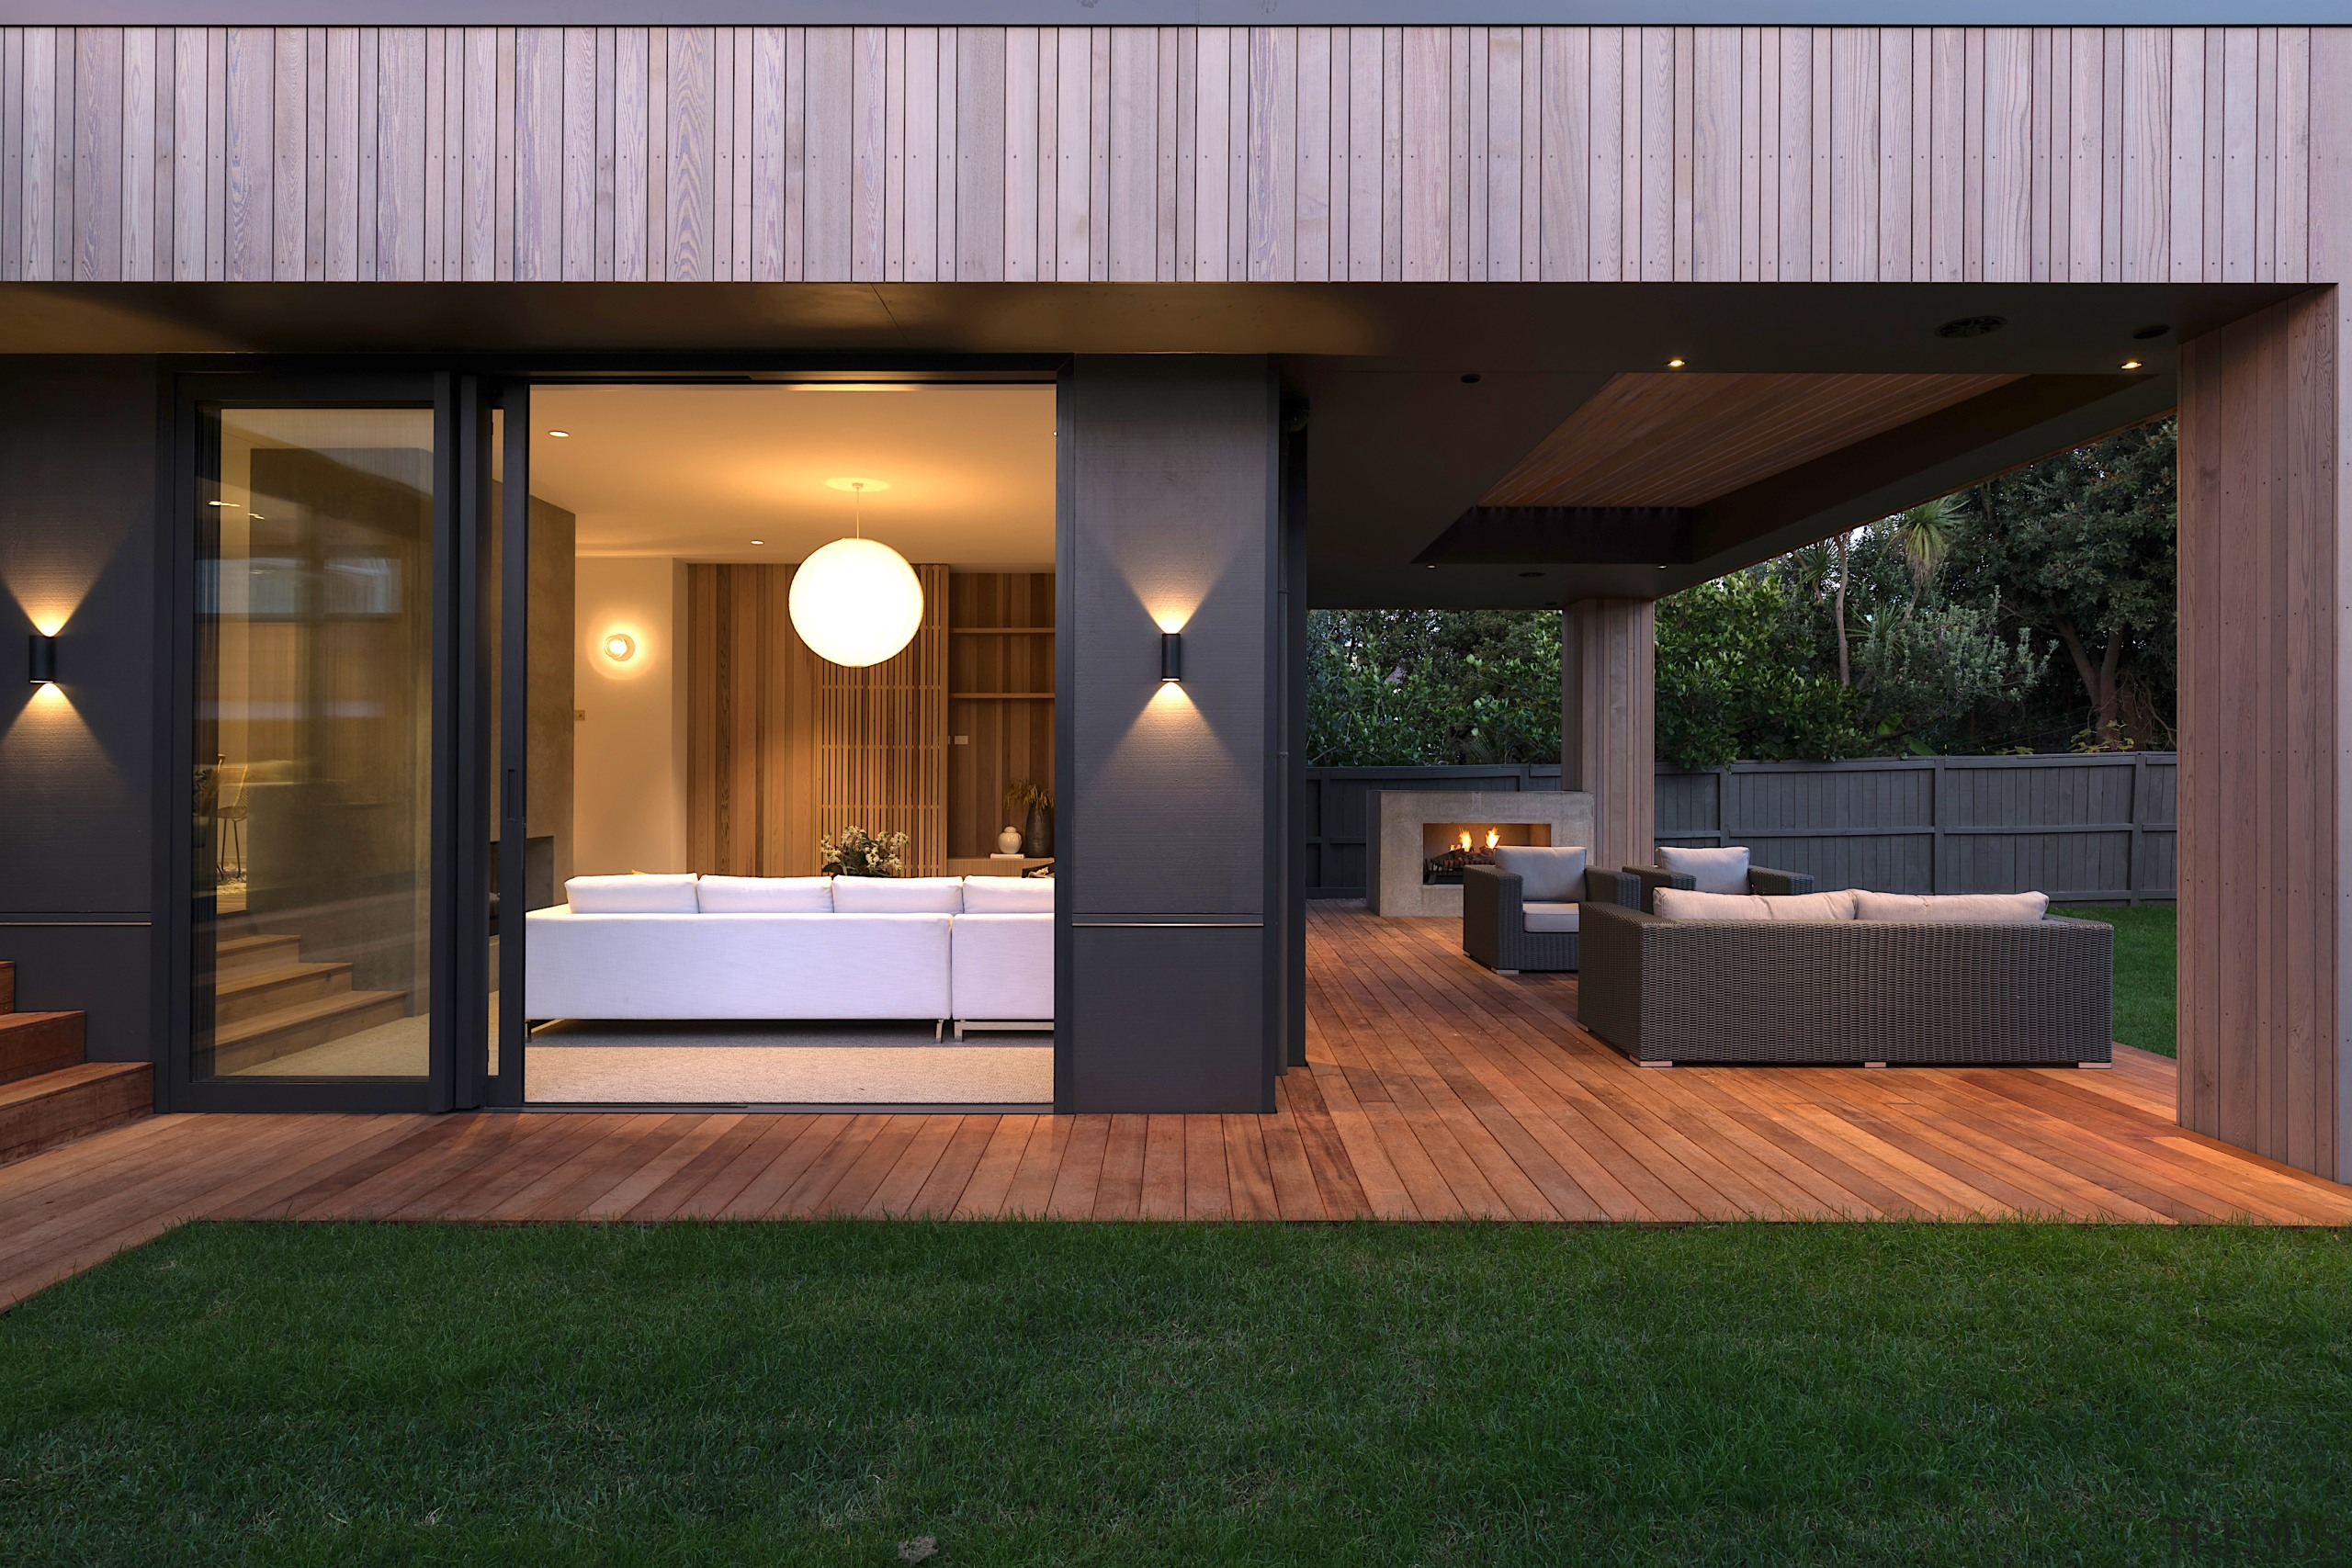 The home's generous rear outdoor living space continues